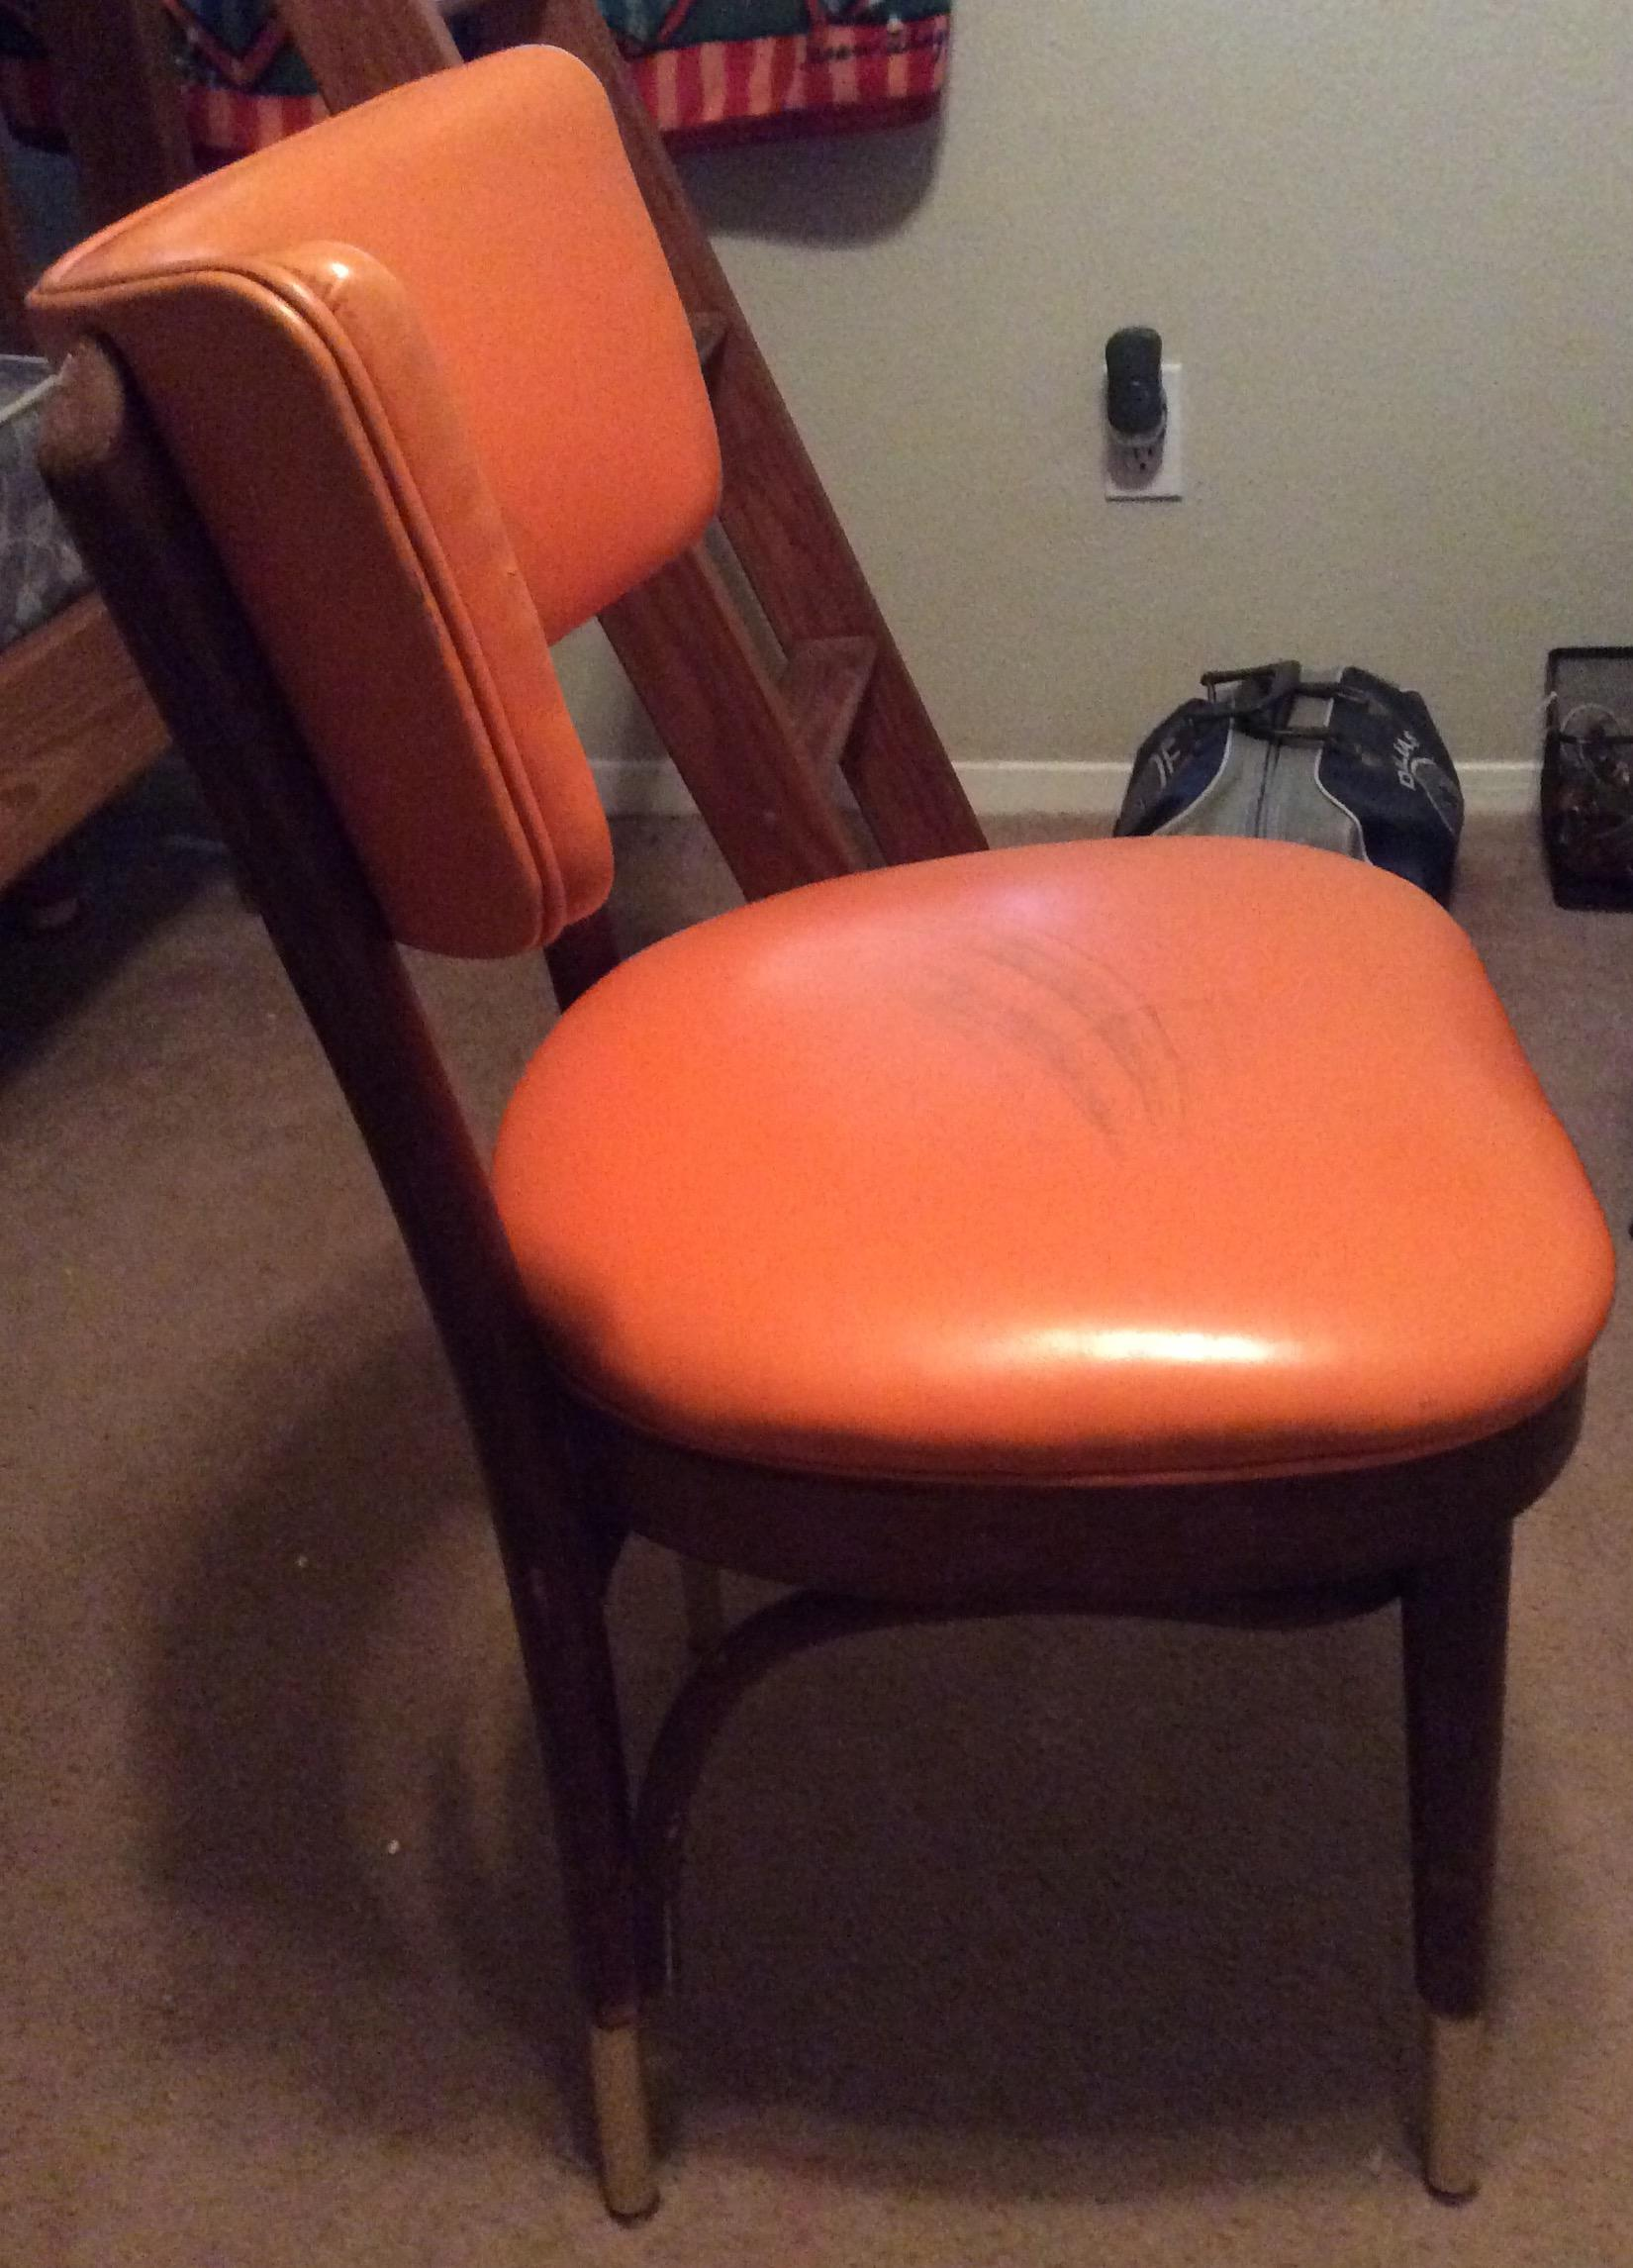 shelby williams chairs rounded corner chair rail vintage retro orange side | chairish